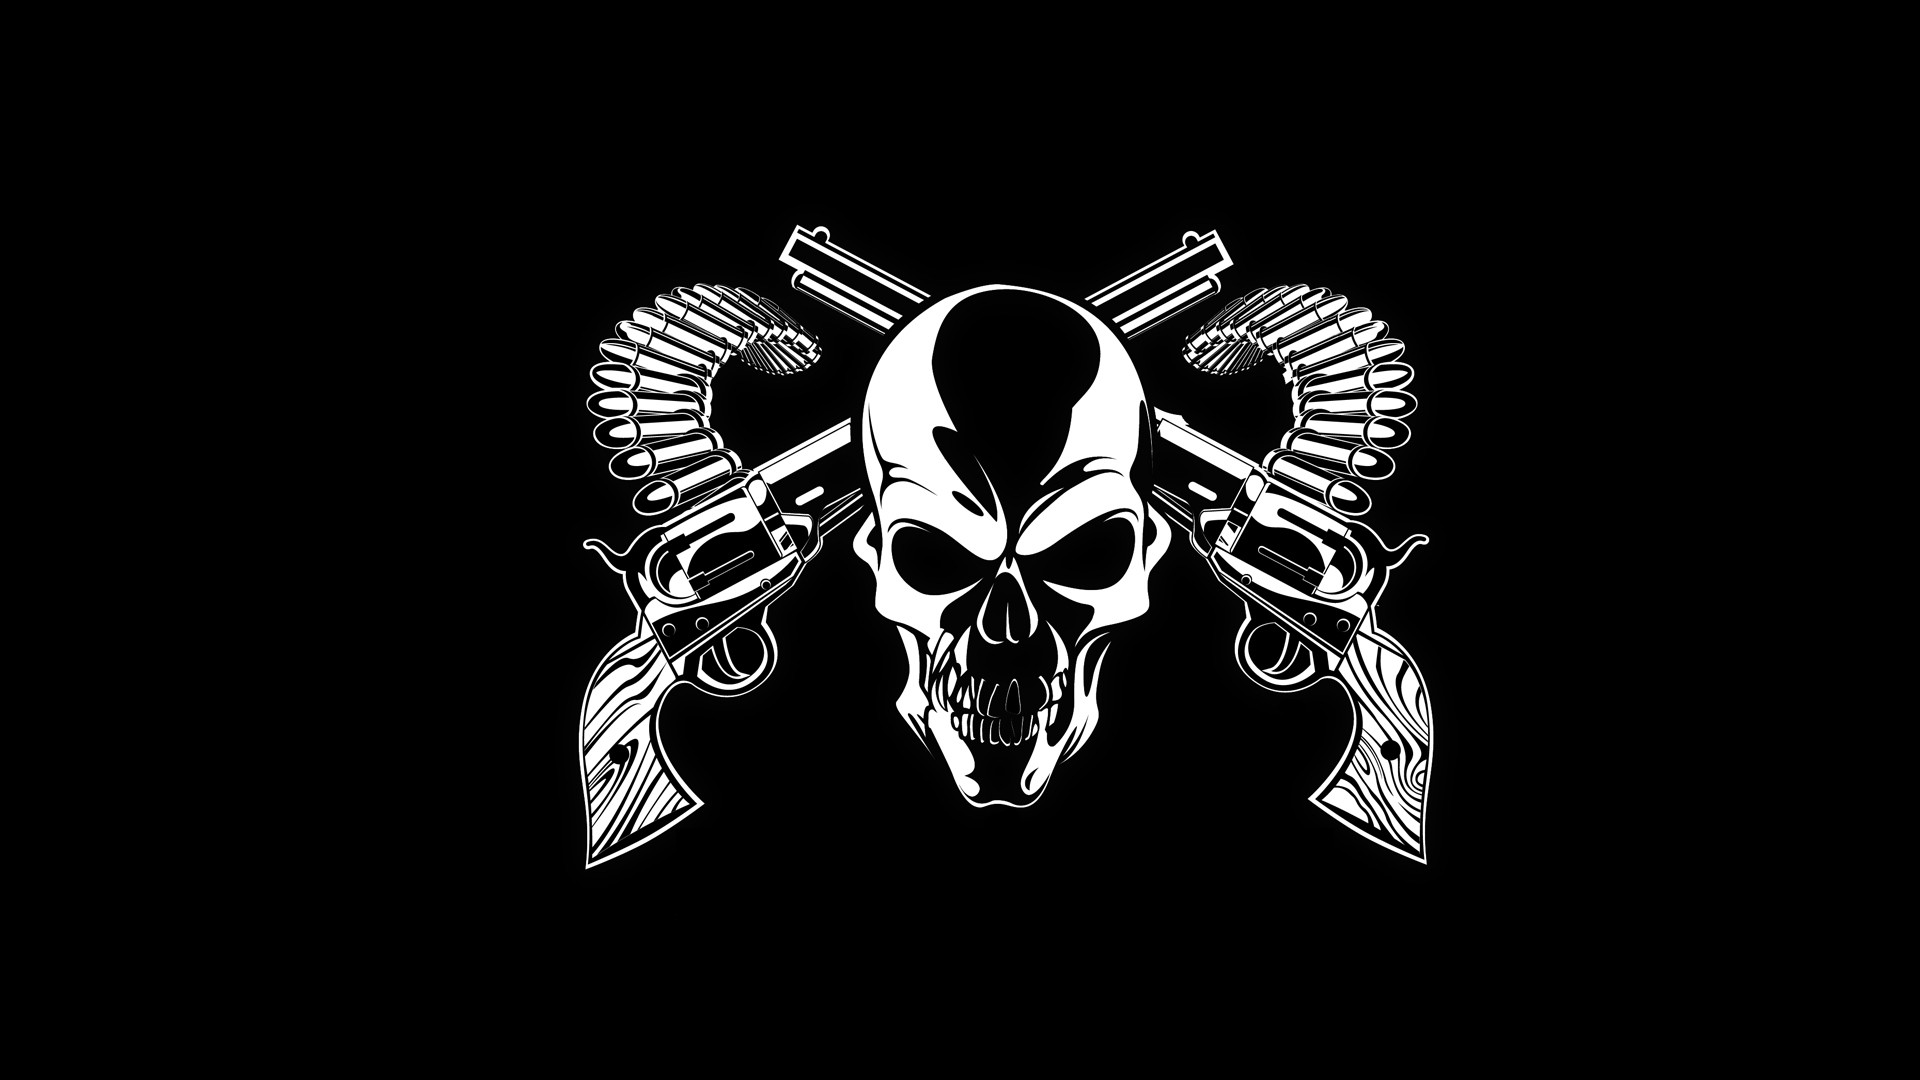 Skull Background Download Free Awesome High Resolution